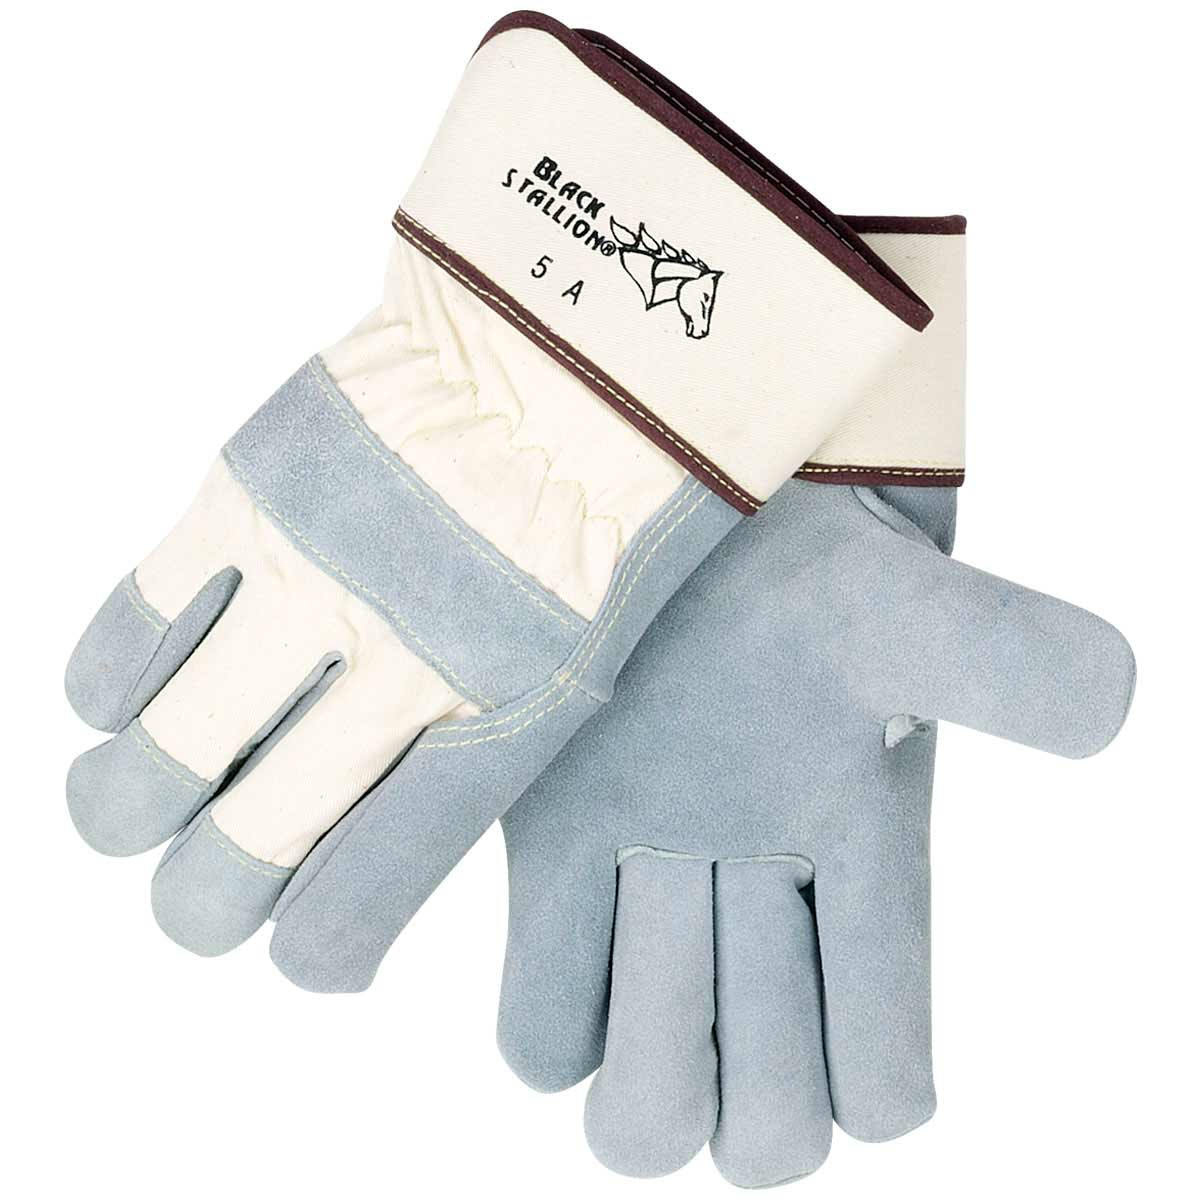 SIDE SPLIT COWHIDE - STRAP BACK PREMIUM LEATHER PALM WORK GLOVES. Pack 12. X Large. 5AXL